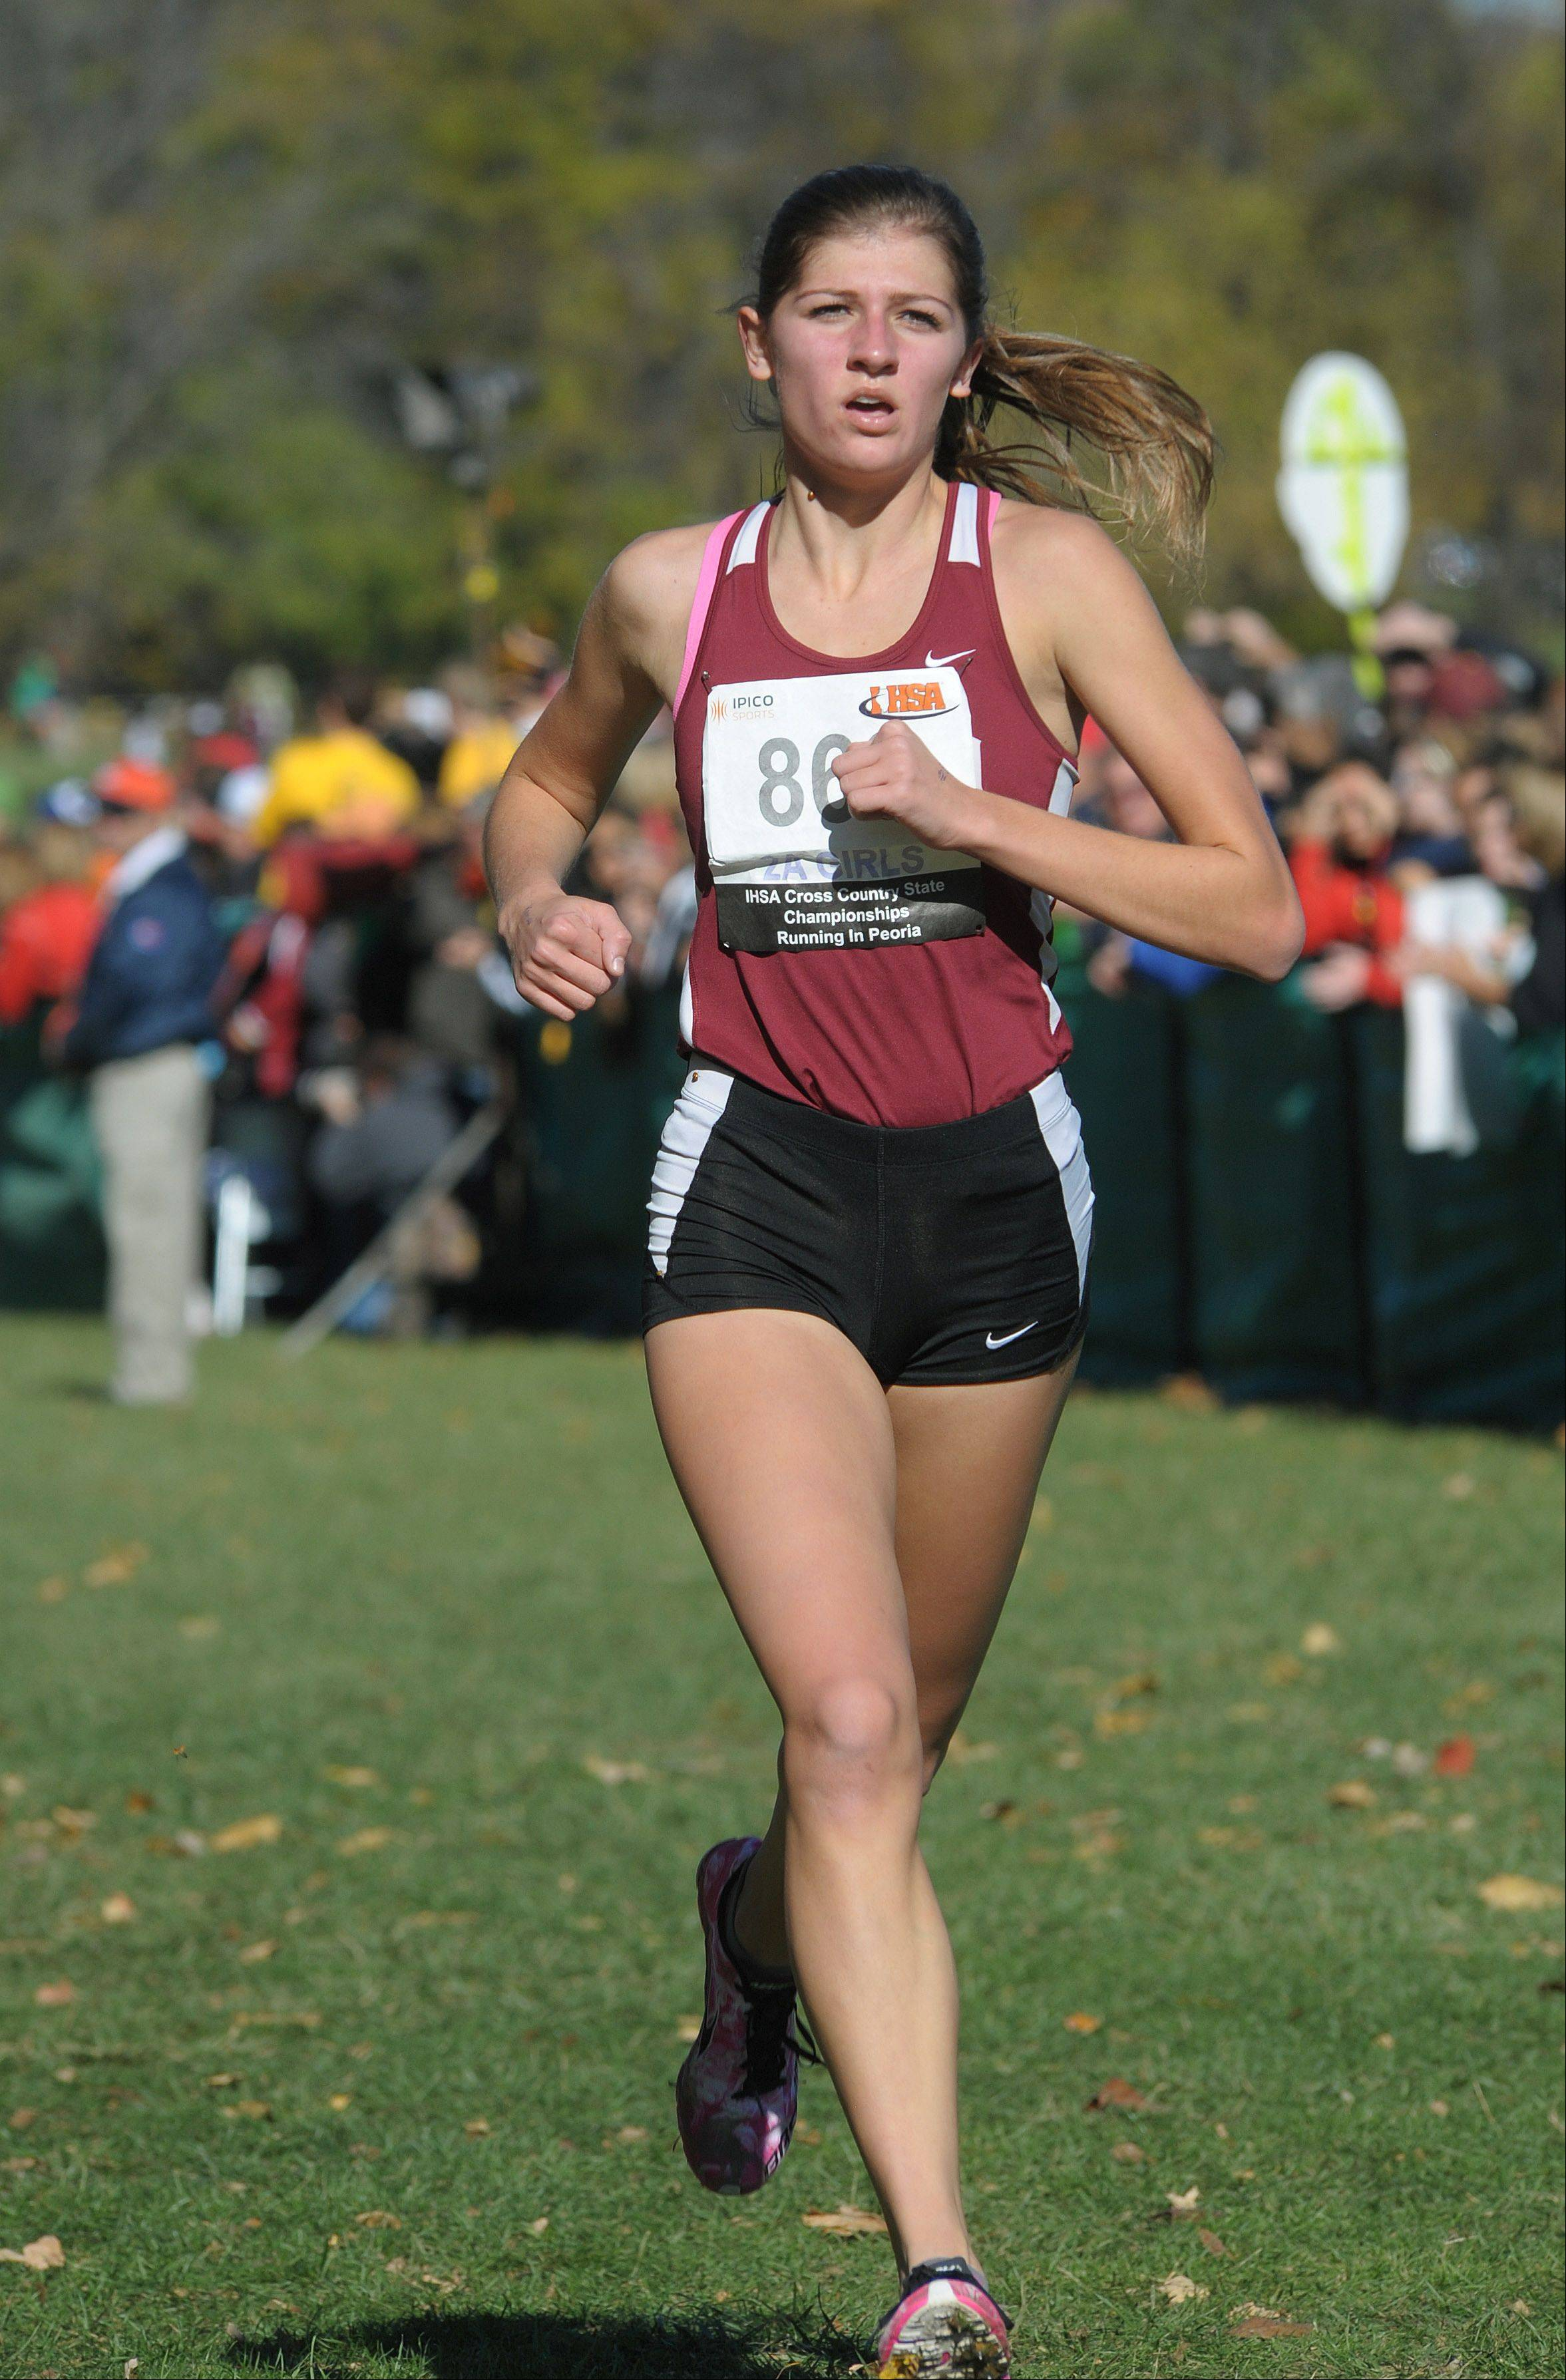 Montini's Brittany Fisher takes 14th place in the Class 2A IHSA cross country state final at Detweiller Park in Peoria on Saturday, November 9.